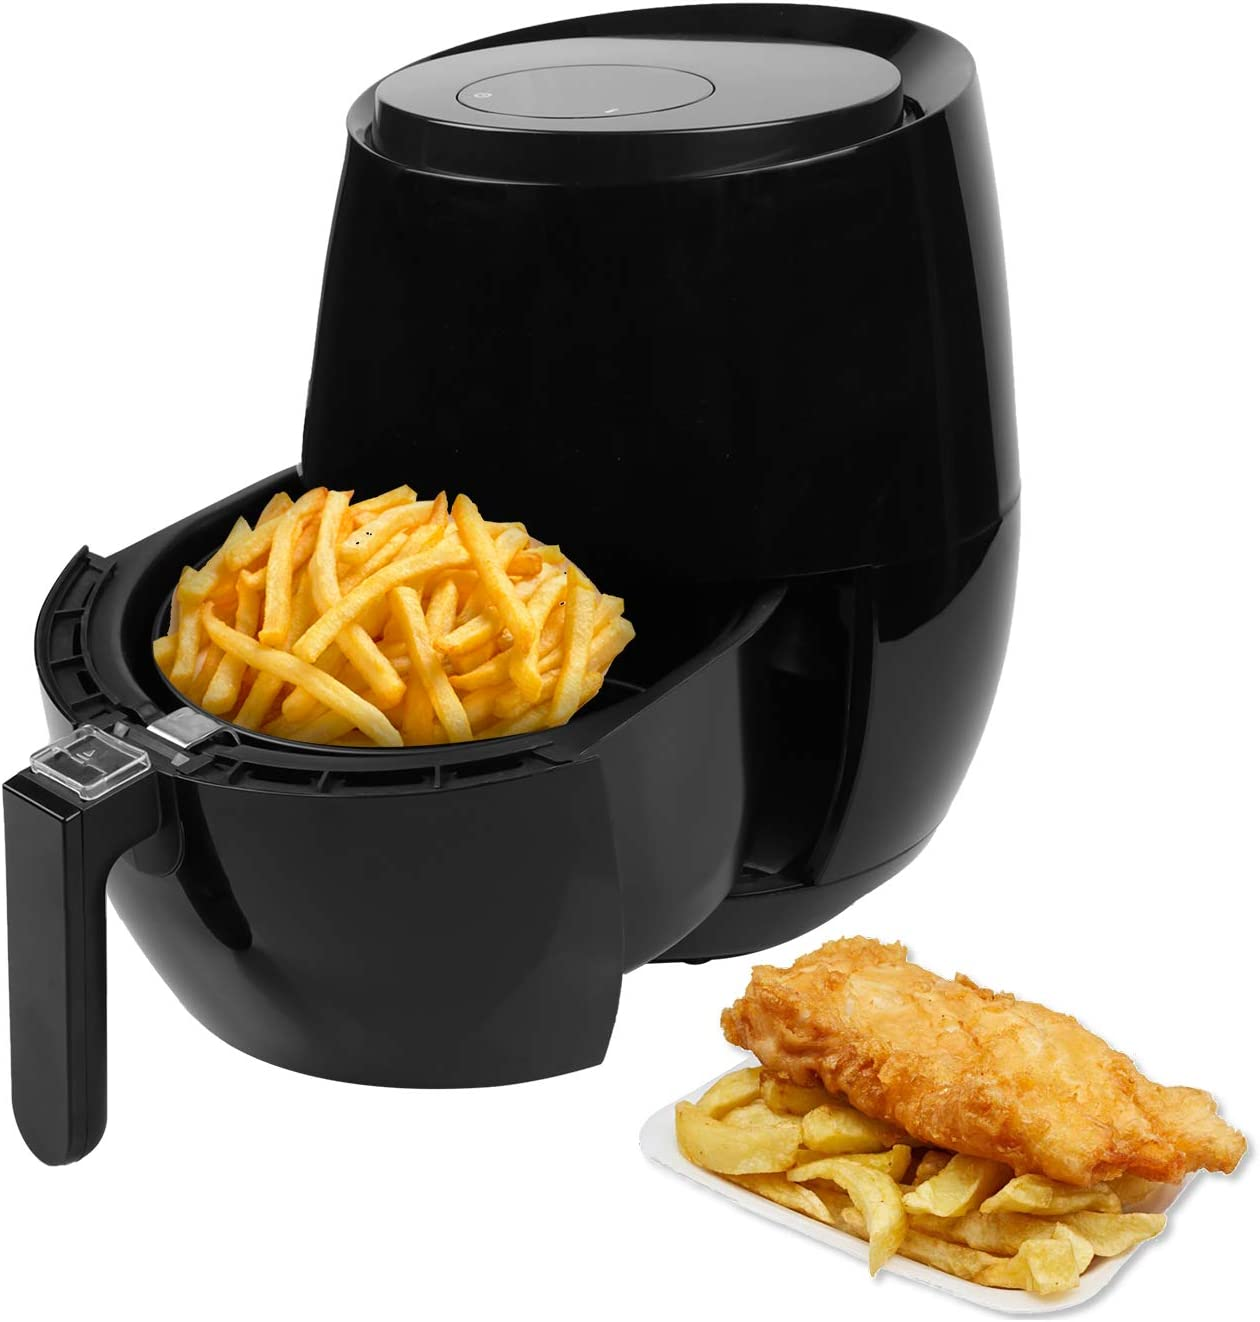 Letton Air Fryer, 3.8QT Electric Hot Air Fryers, Oven Oilless Cooker with LCD Digital Screen & Nonstick Frying Pot, 1350-Watt, Recipes (Black)